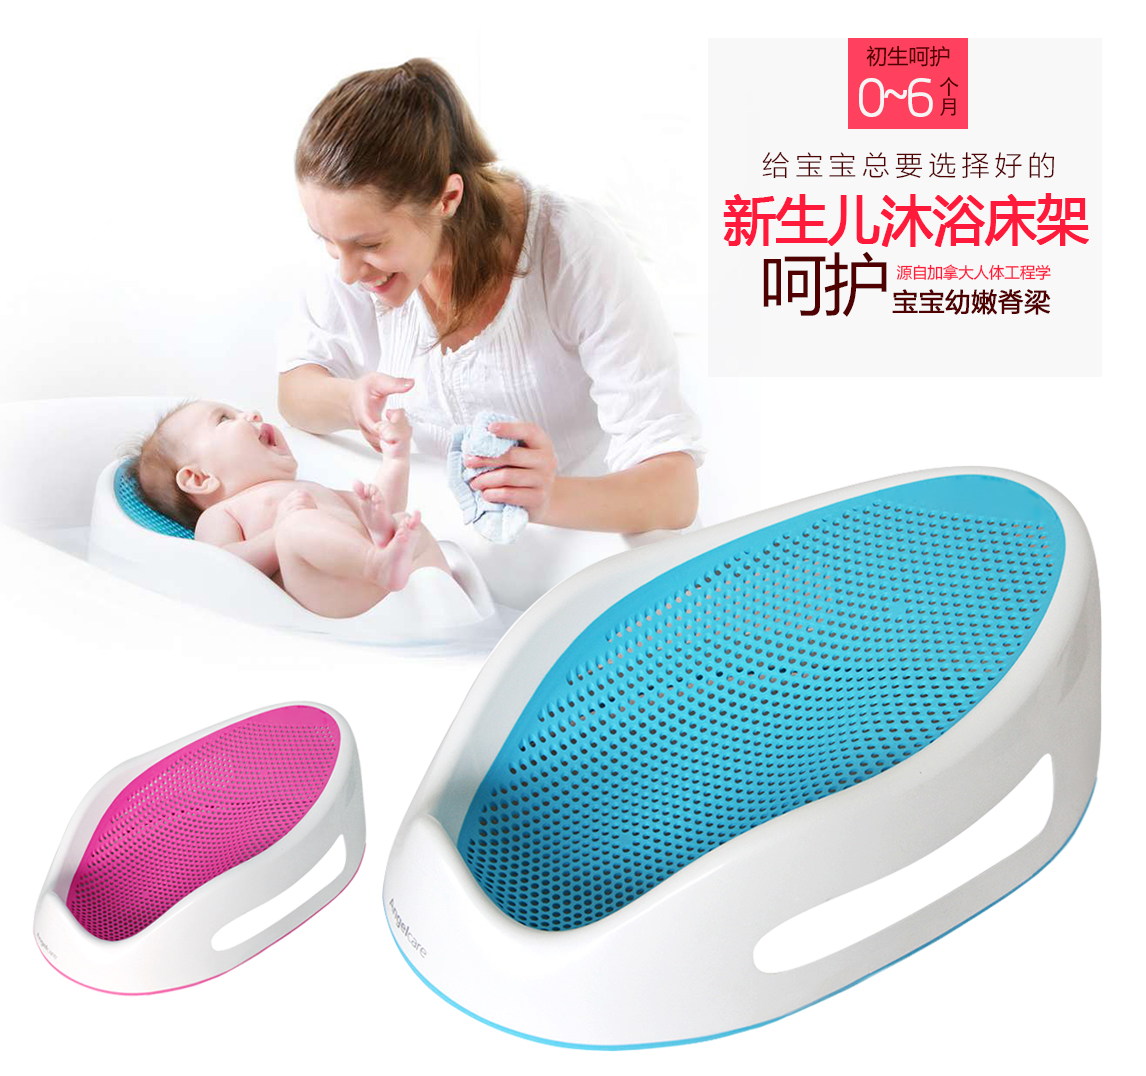 Comfortable Bath Mesh Baby Bath Tub Aircraft Bathtub Newborn Baby ...